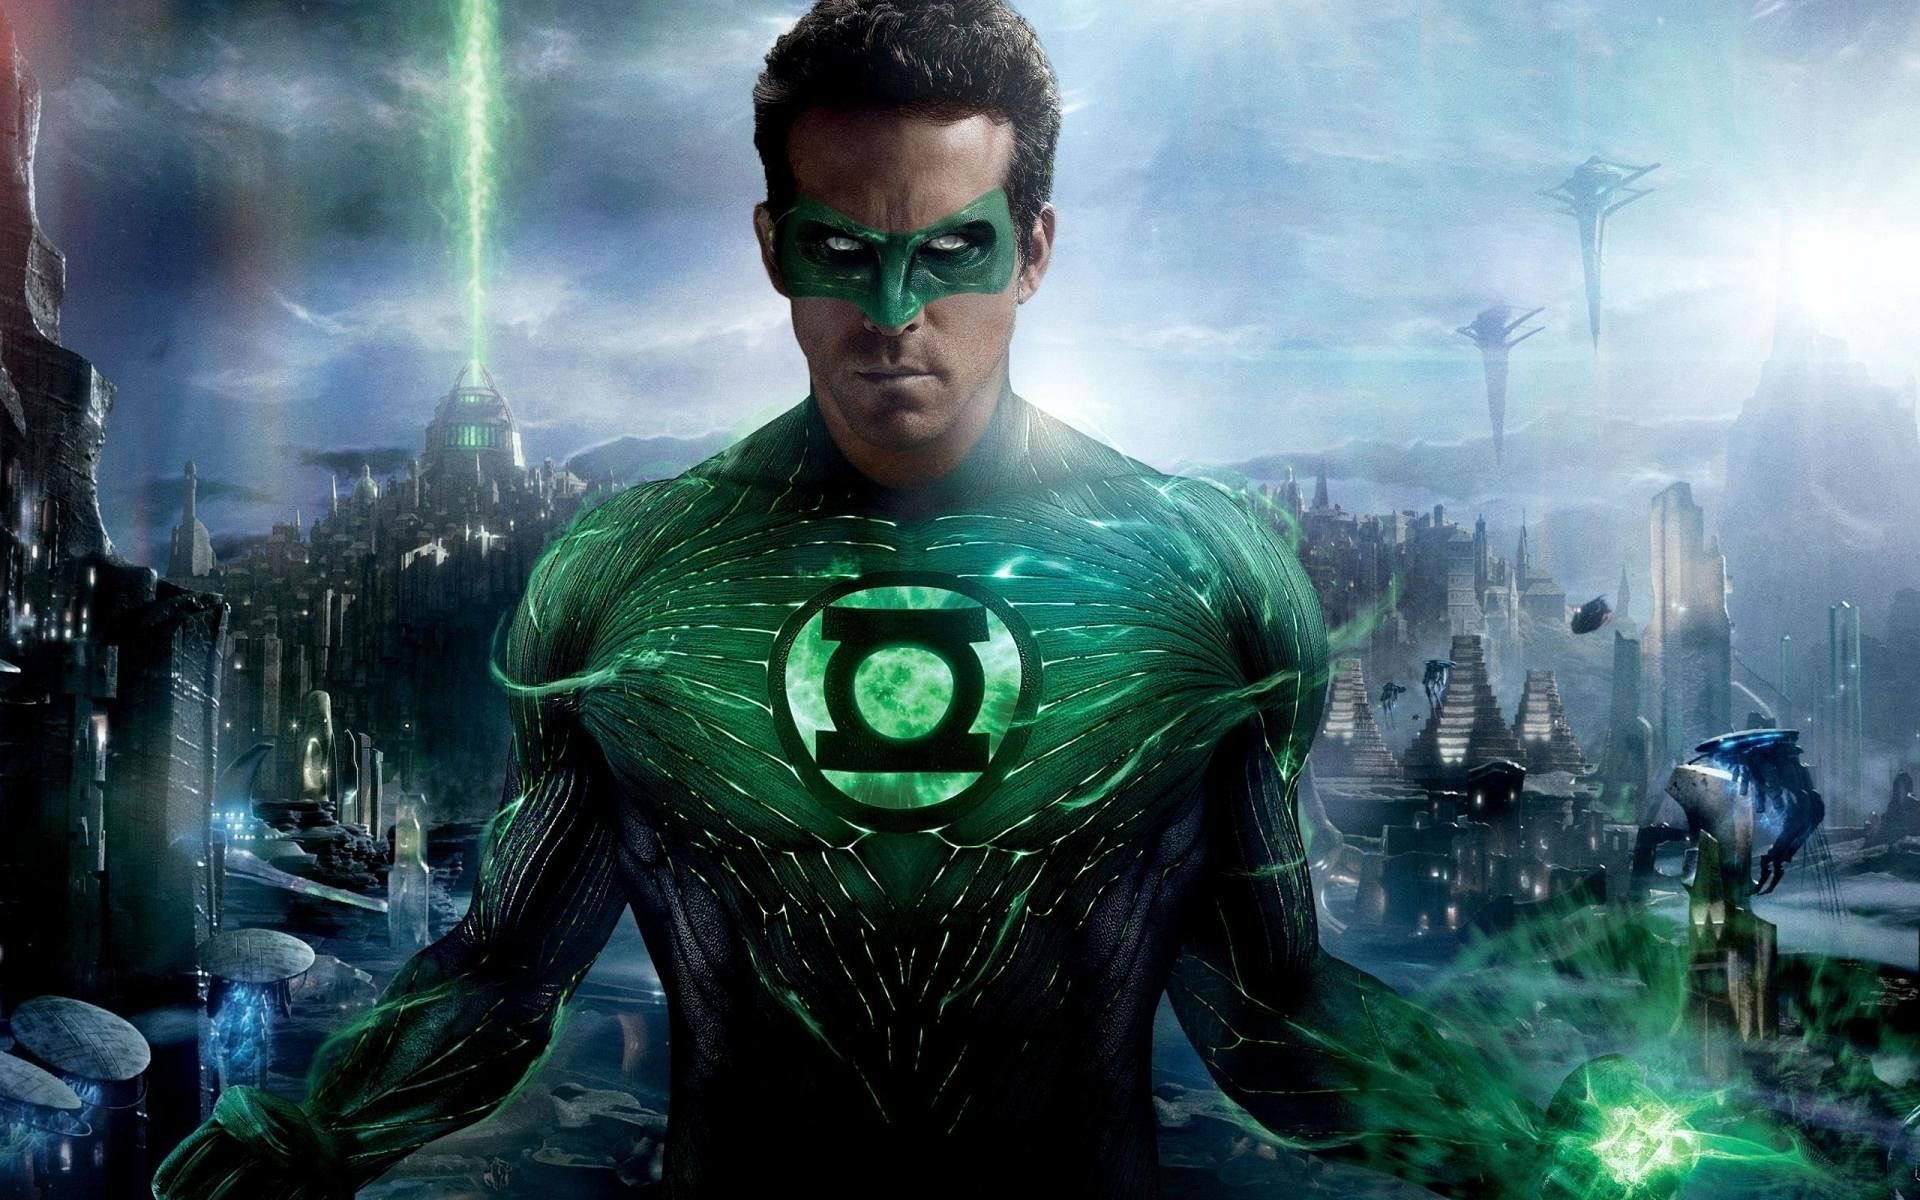 Photo of 5 Actors Who Could Play Green Lantern